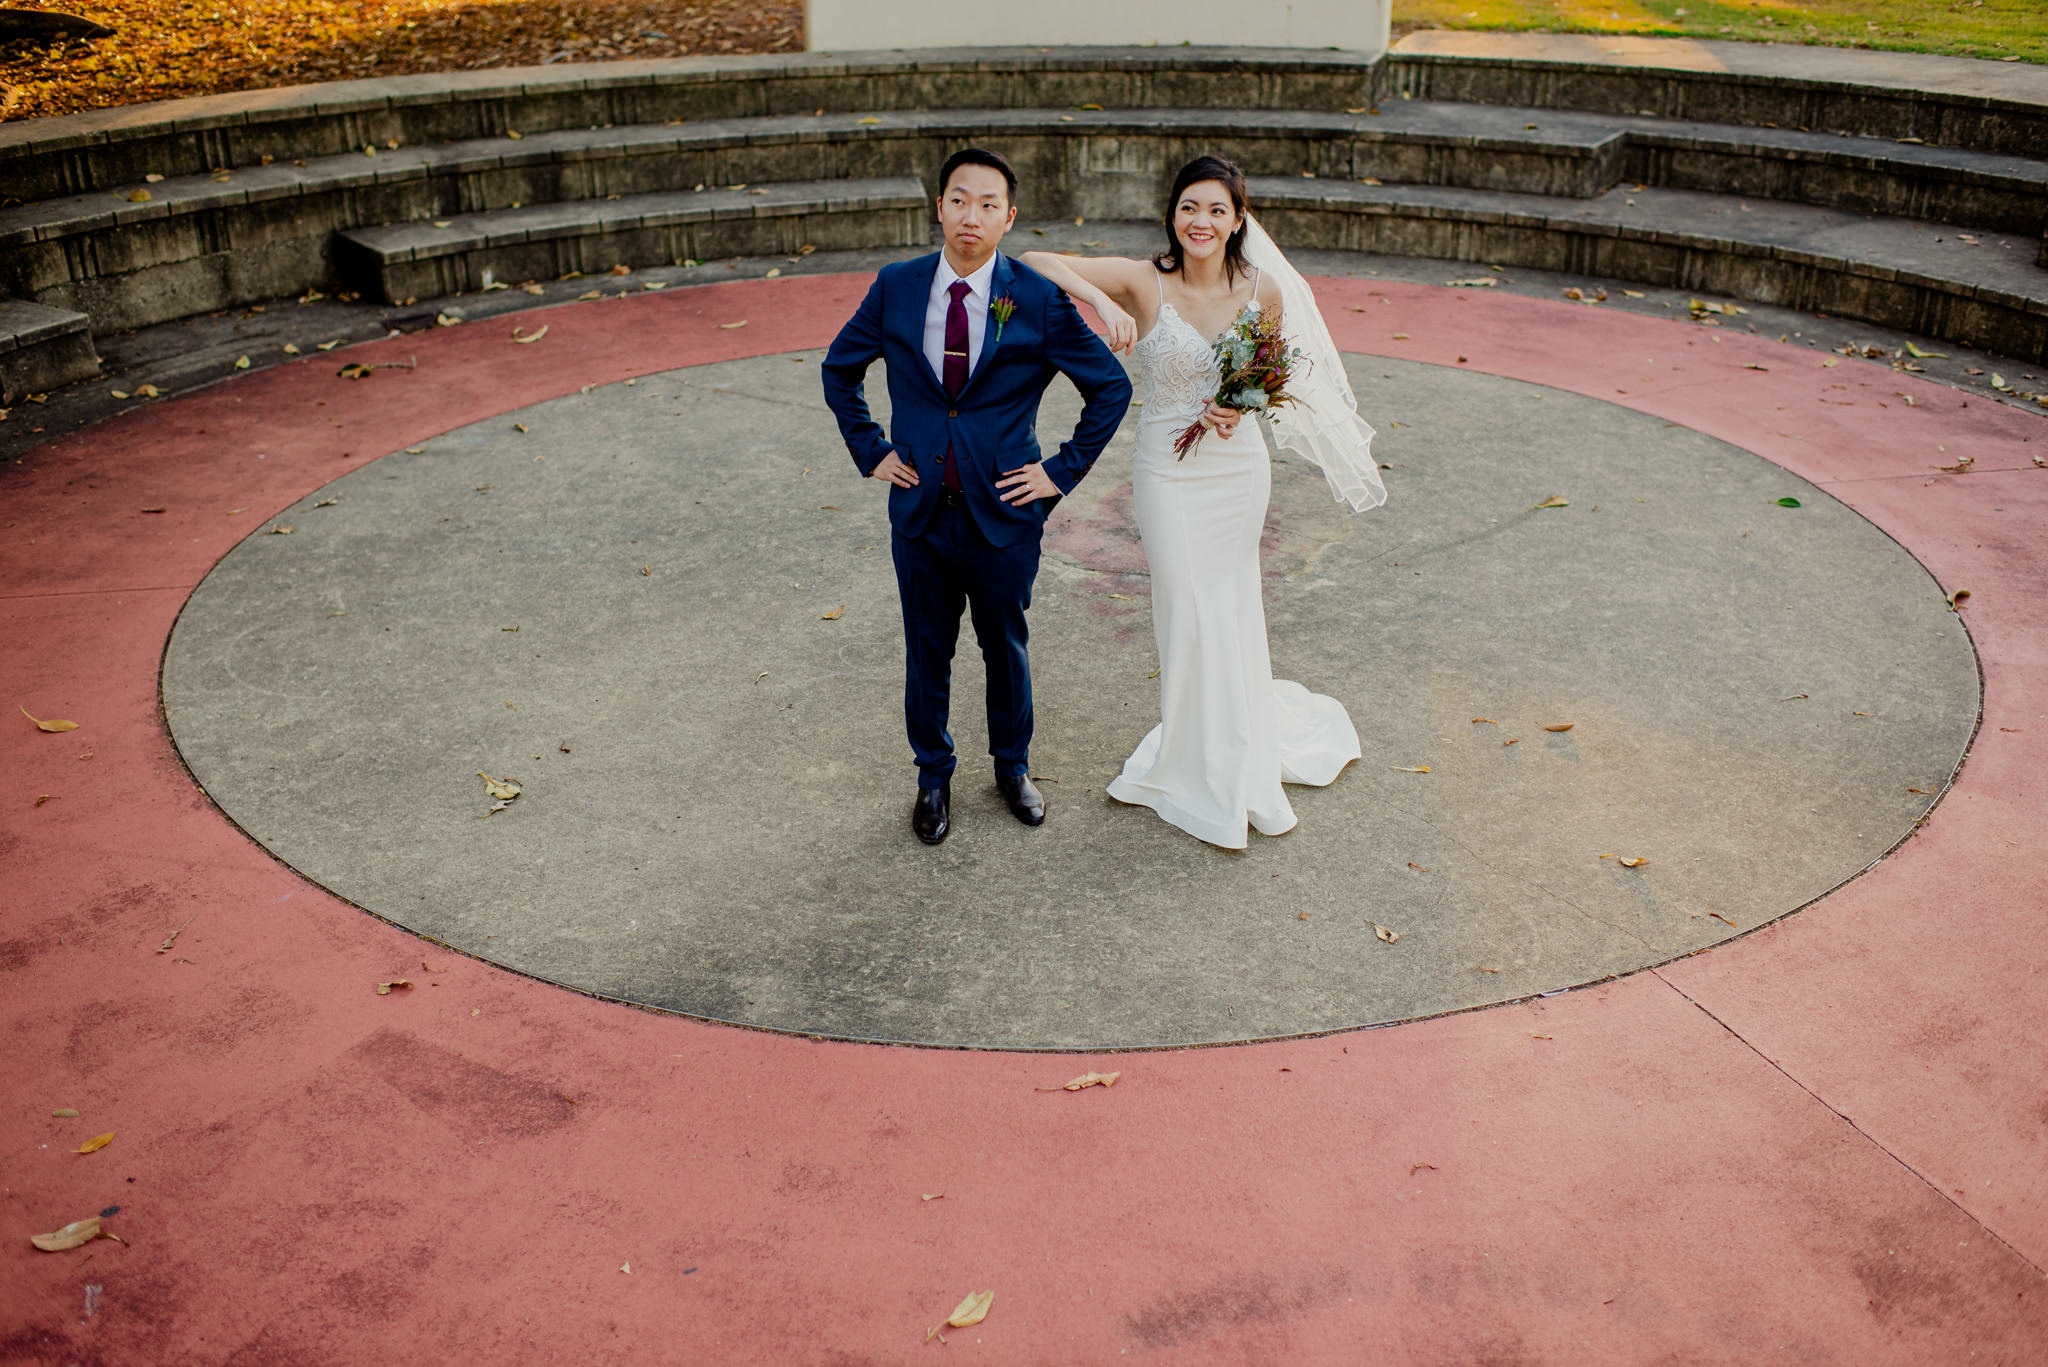 Two newlyweds pose on a large concrete circle enveloped by a red concrete ring